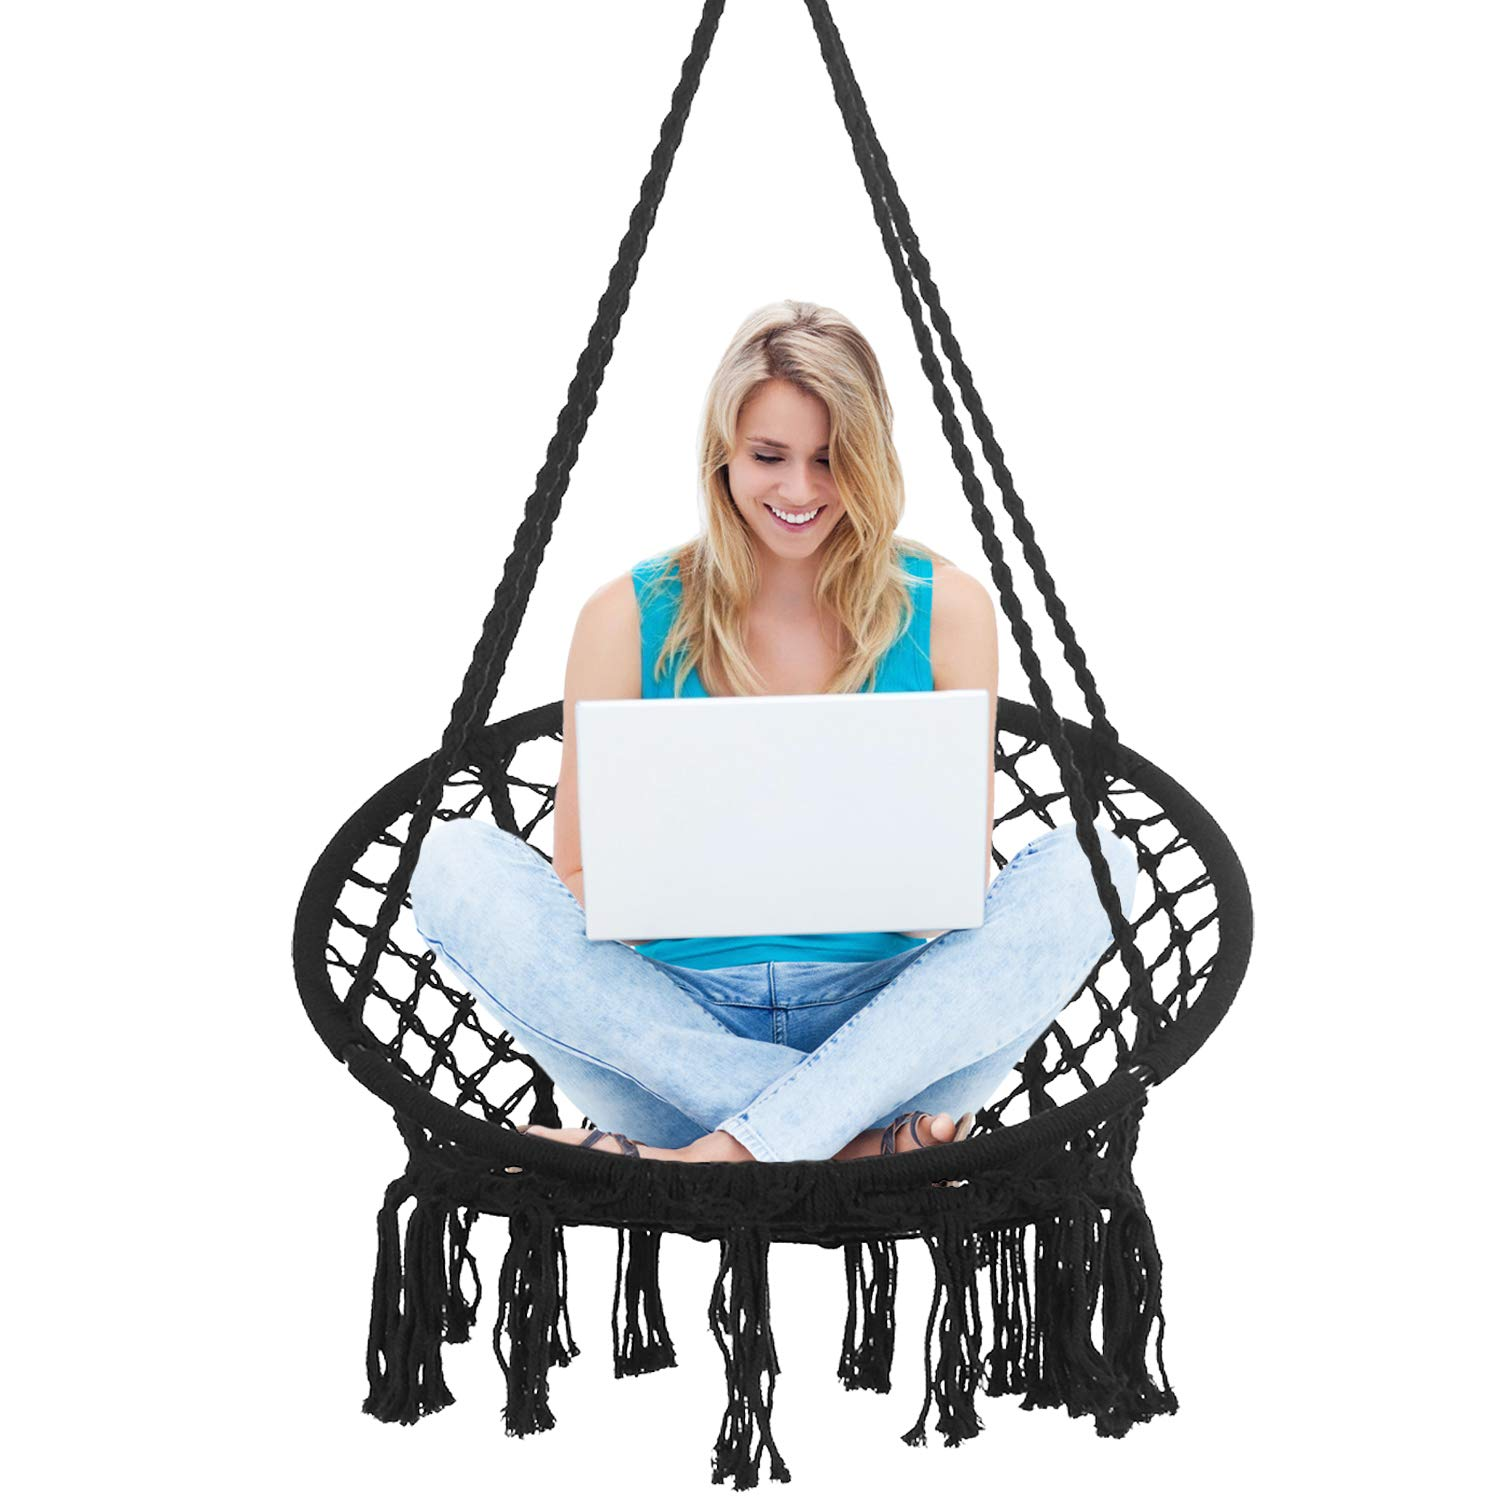 Bathonly Hammock Chair Macrame Swing Handmade Knitted Hanging Swing Chair, Cotton Rope Chair for Indoor Outdoor, Bedroom, Yard, Porch,-330lb Capacity Black